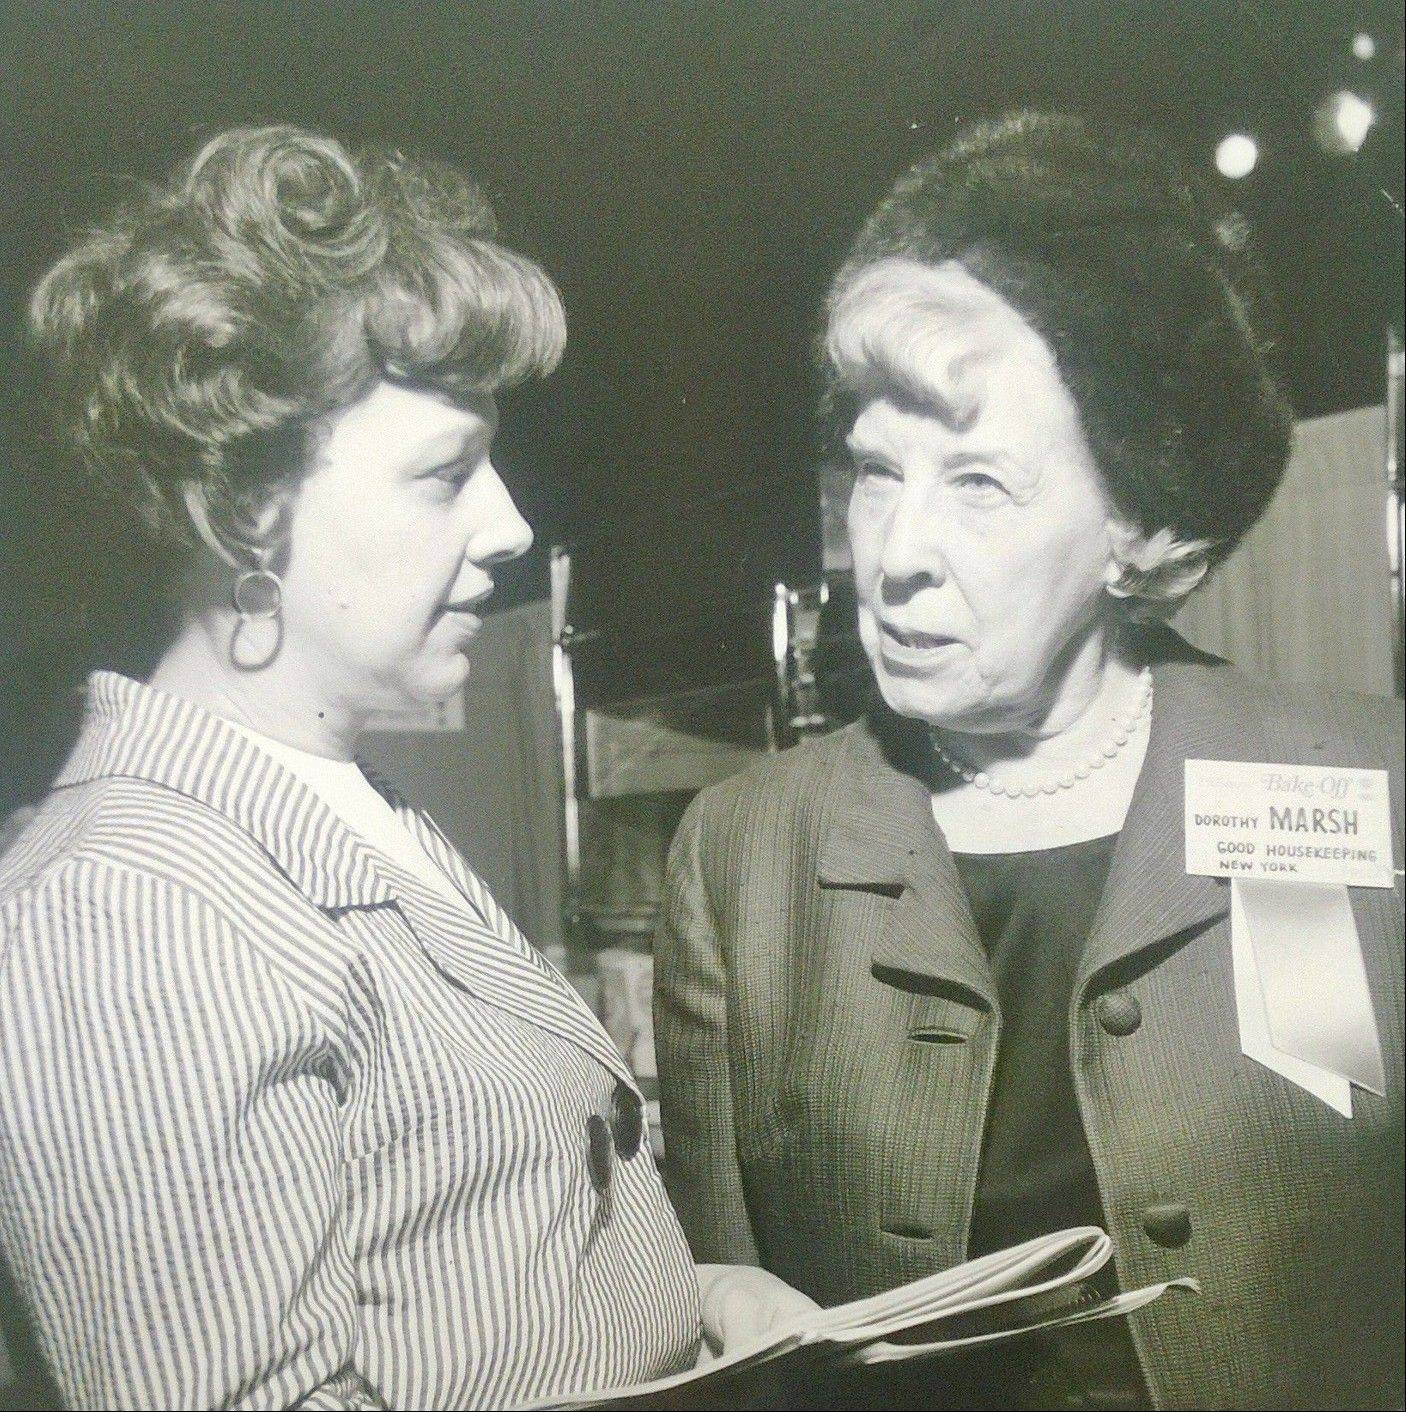 Suburban Living editor Pat Adam talks to Dorothy Marsh of Good Housekeeping magazine while covering the Pillsbury Bake-Off in 1967.